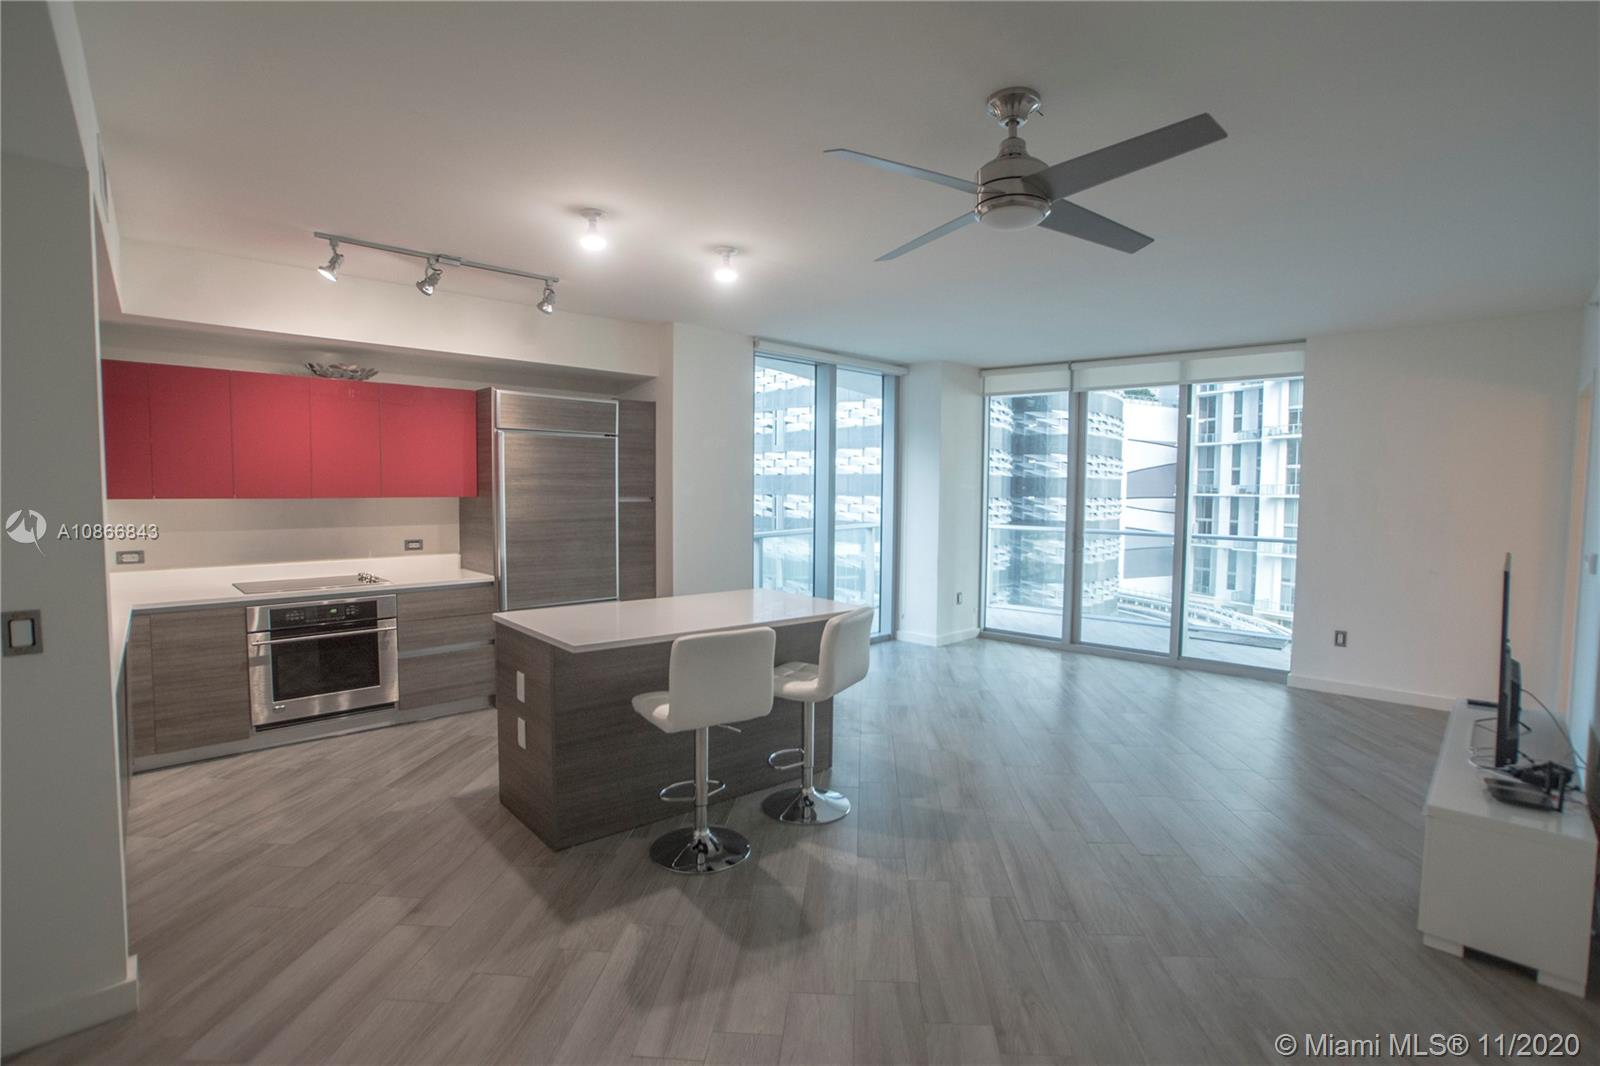 Amazing 2 Bedroom 2 Bath for rent in the building in Brickell, 1100 Millecento. This unit is fully upgraded with porcelain wood tile in the living room, kitchen, and terrace. Additional upgrades include California wood drawers in the master bedroom closet and window treatments. Standard features include Italian cabinetry, quartz countertops, full floor to ceiling windows, rainfall showers. 1100 Milliecento is inspired by the supercars of Italy and designed by Pininfarina.